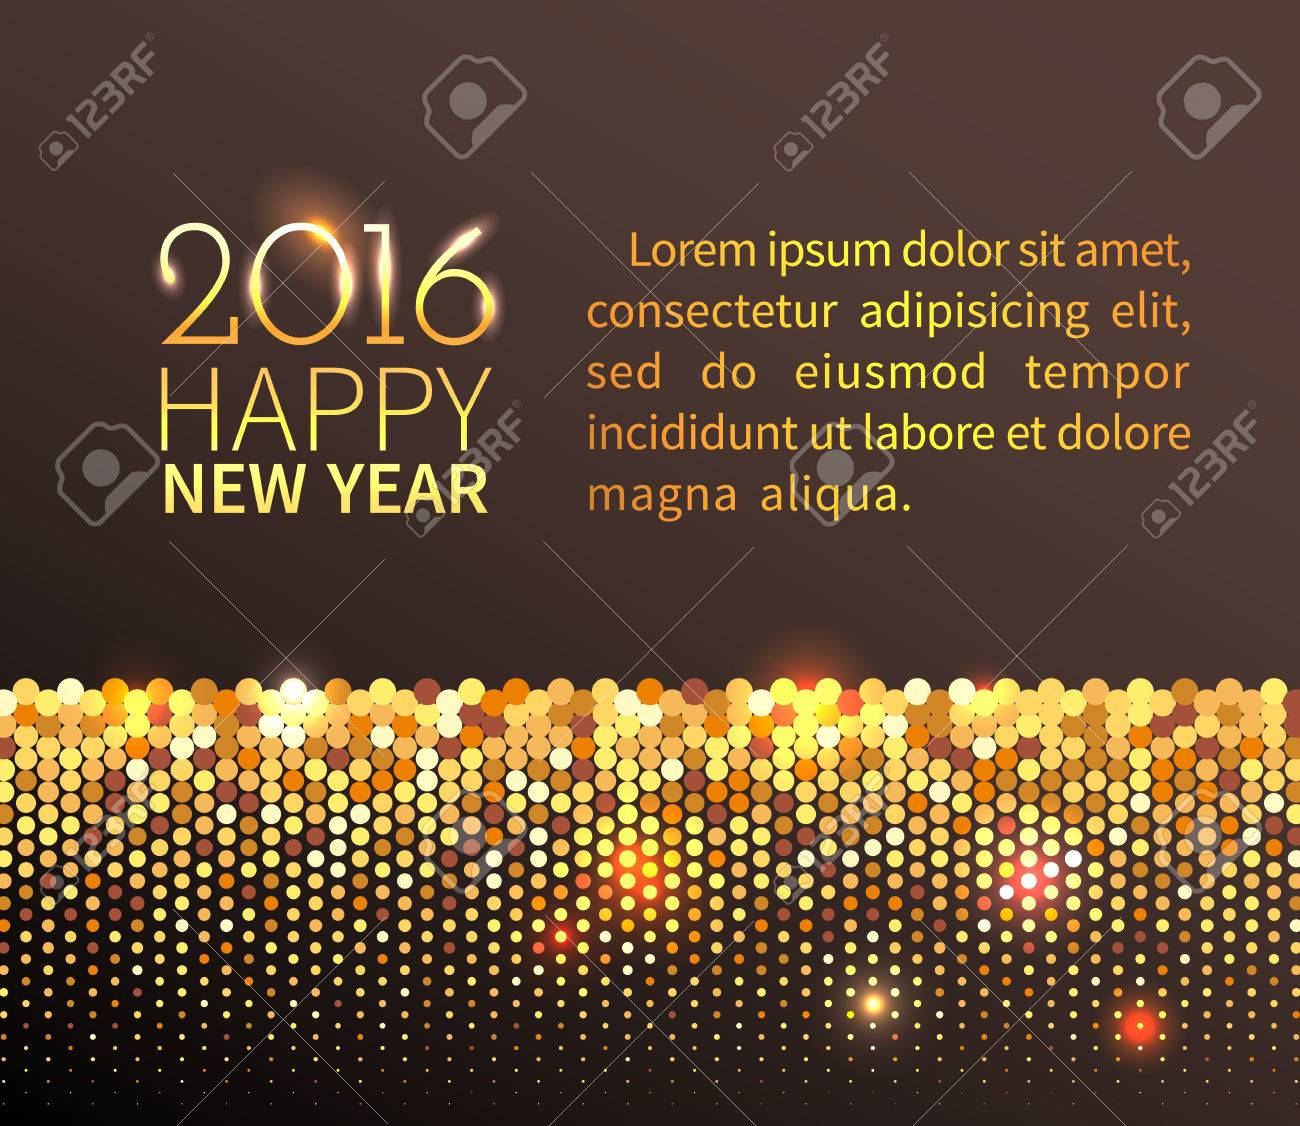 new year 2016 background gold shining horizontal border with sparkling sequins in the disco style